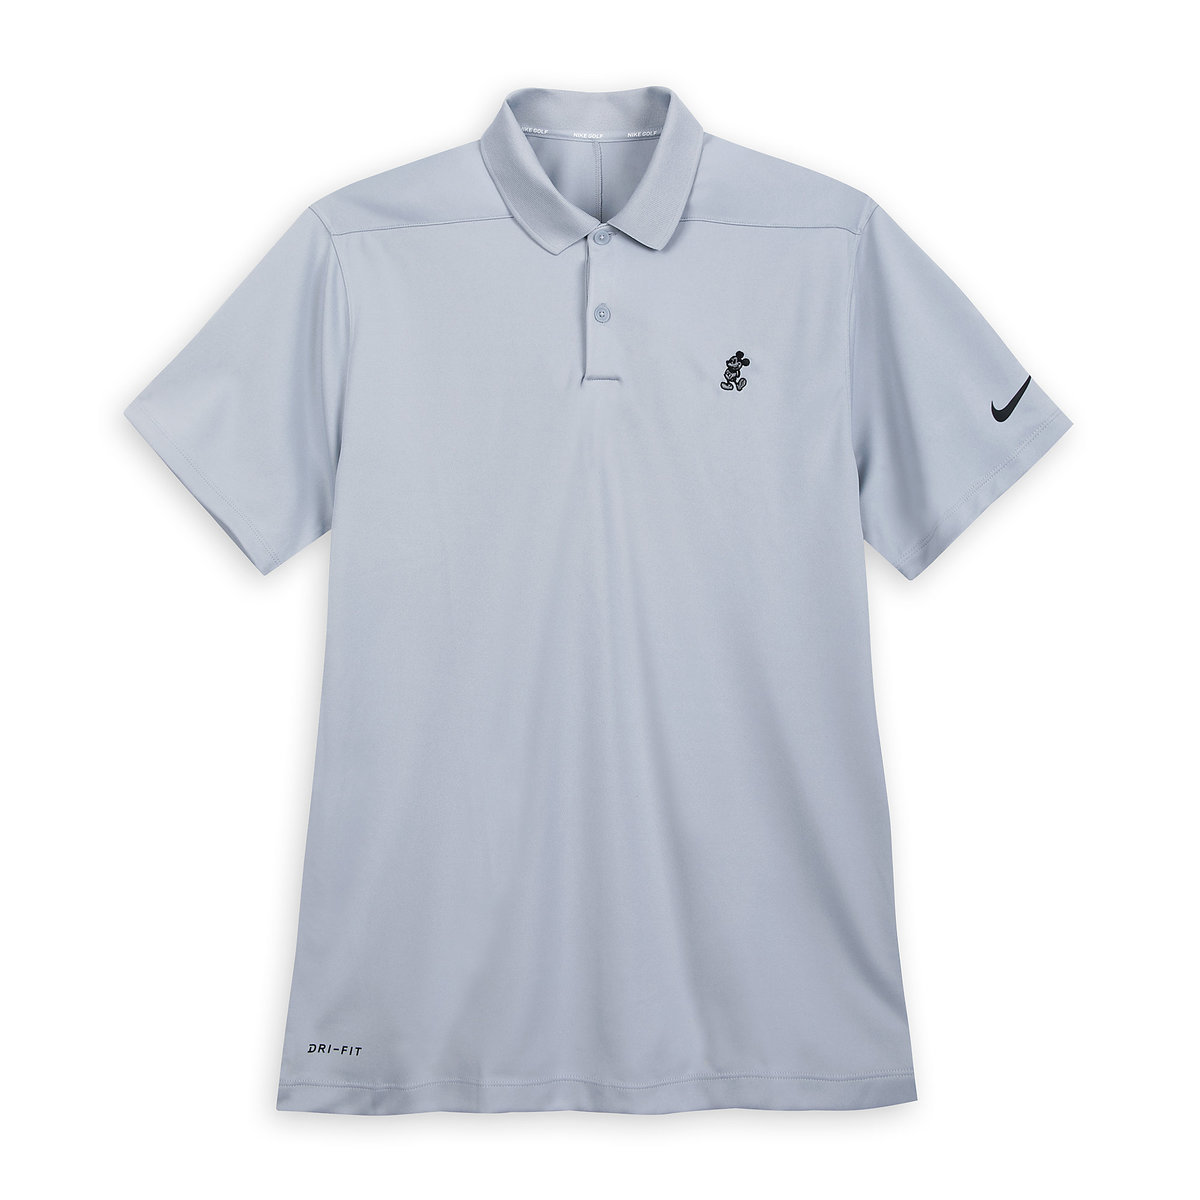 714474f9 Product Image of Mickey Mouse Polo for Men by Nike # 1